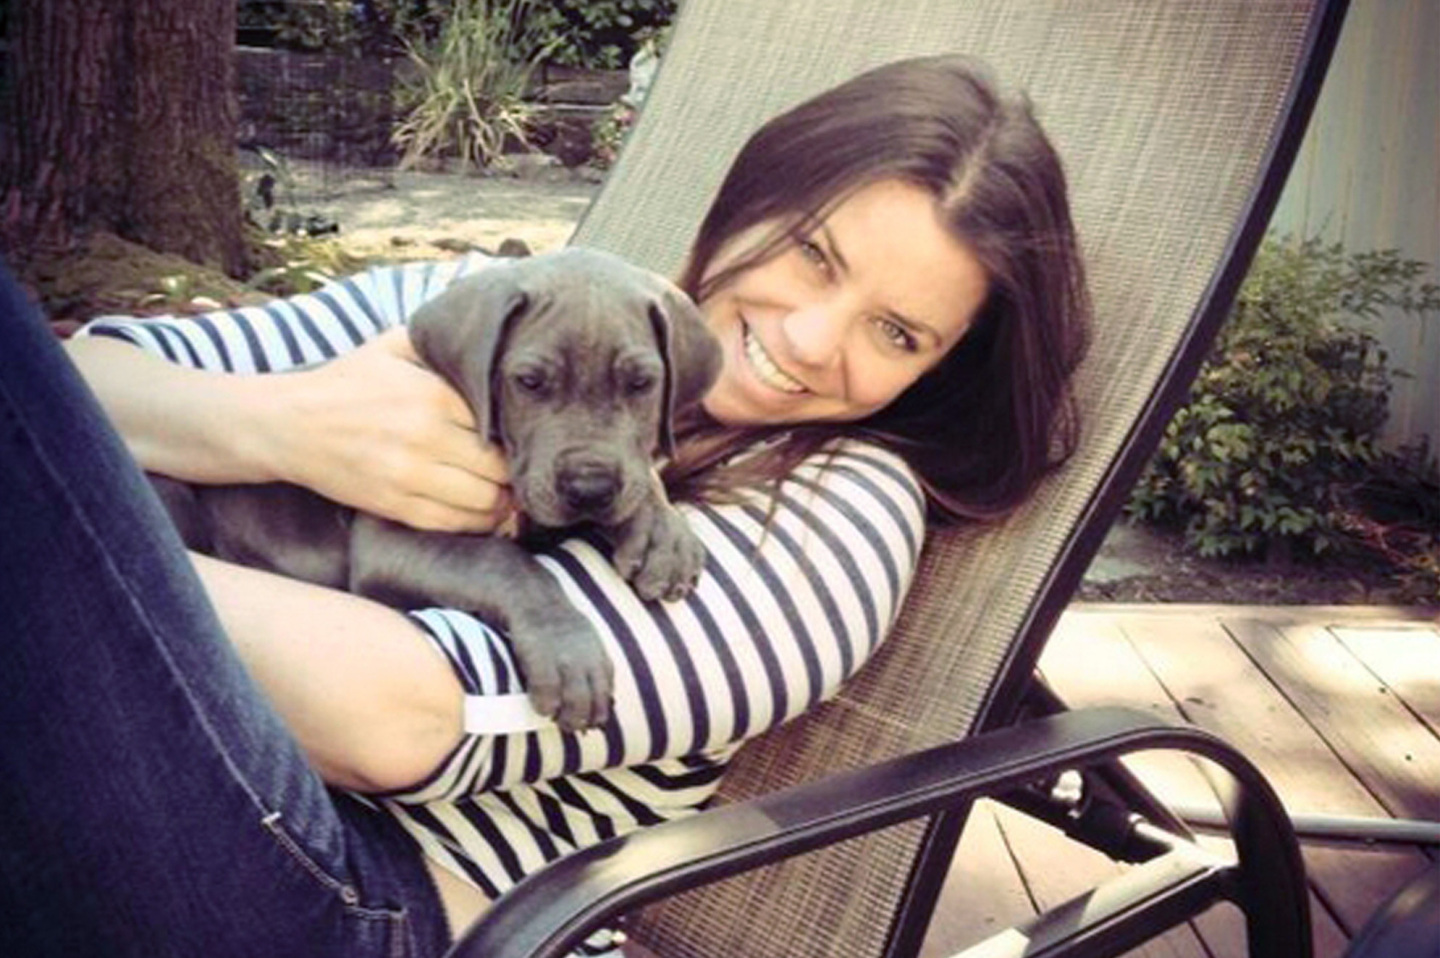 Brittany Maynard, 29, terminally ill with brain cancer, ended her own life on Nov. 1, 2014.